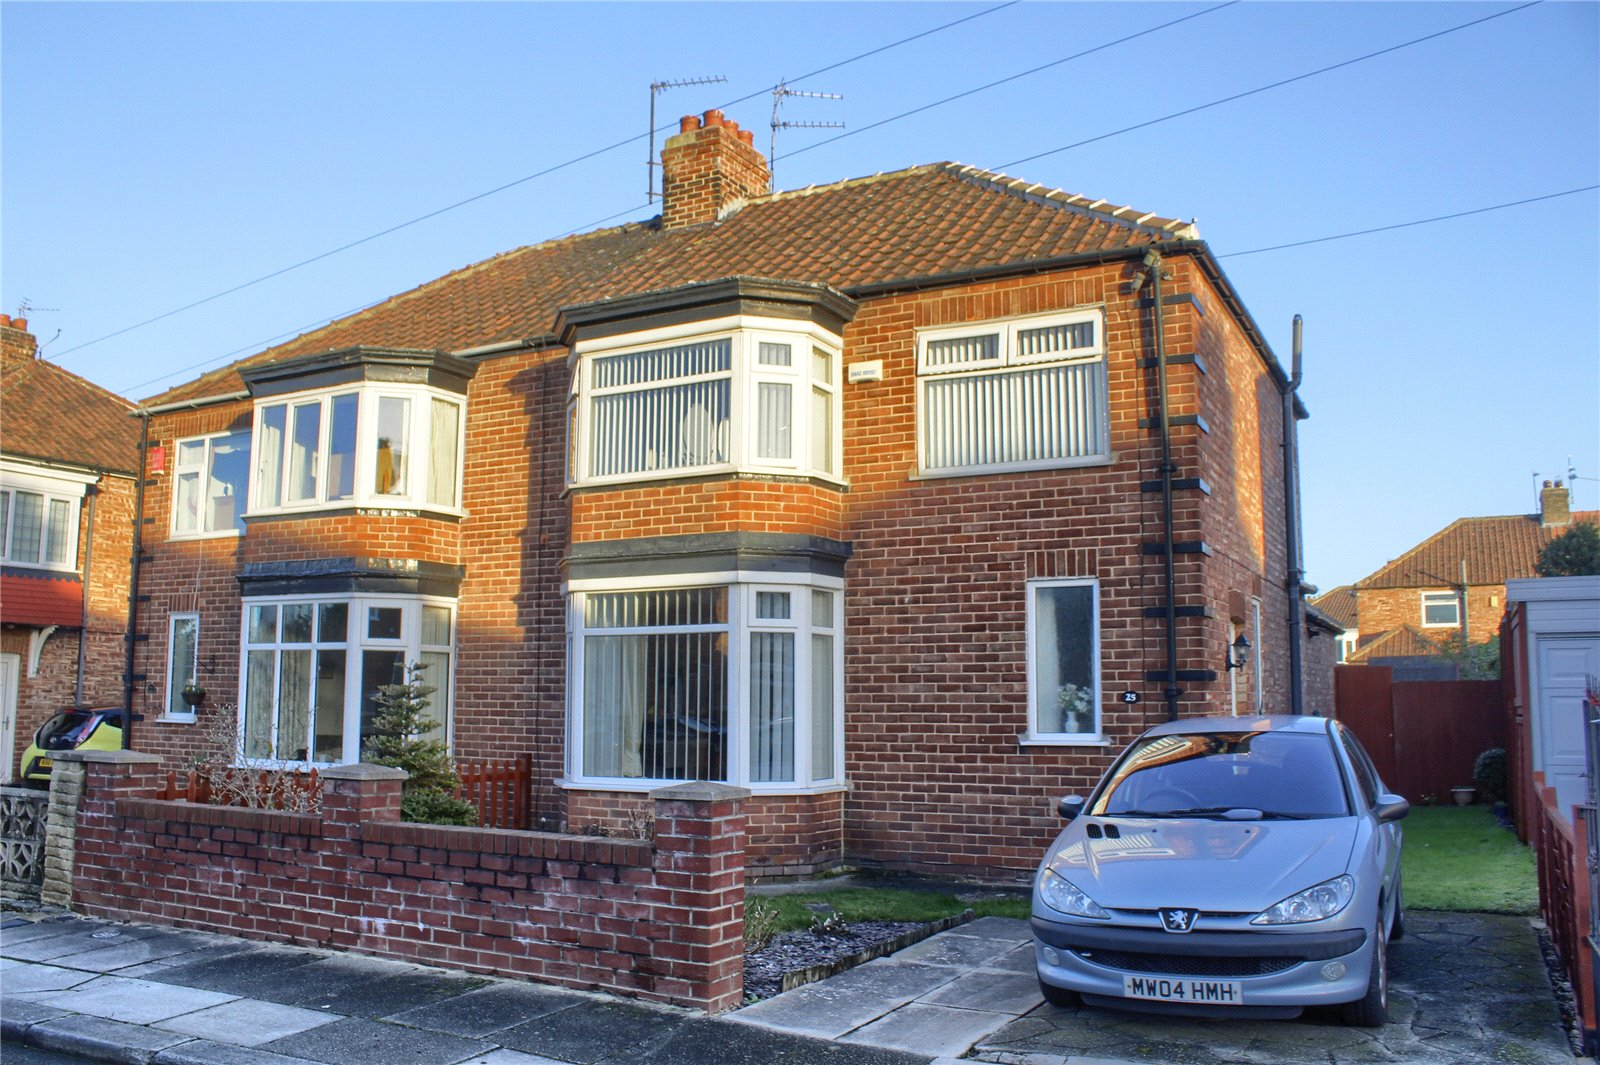 3 bed house for sale in Benton Road, Tollesby - Property Image 1